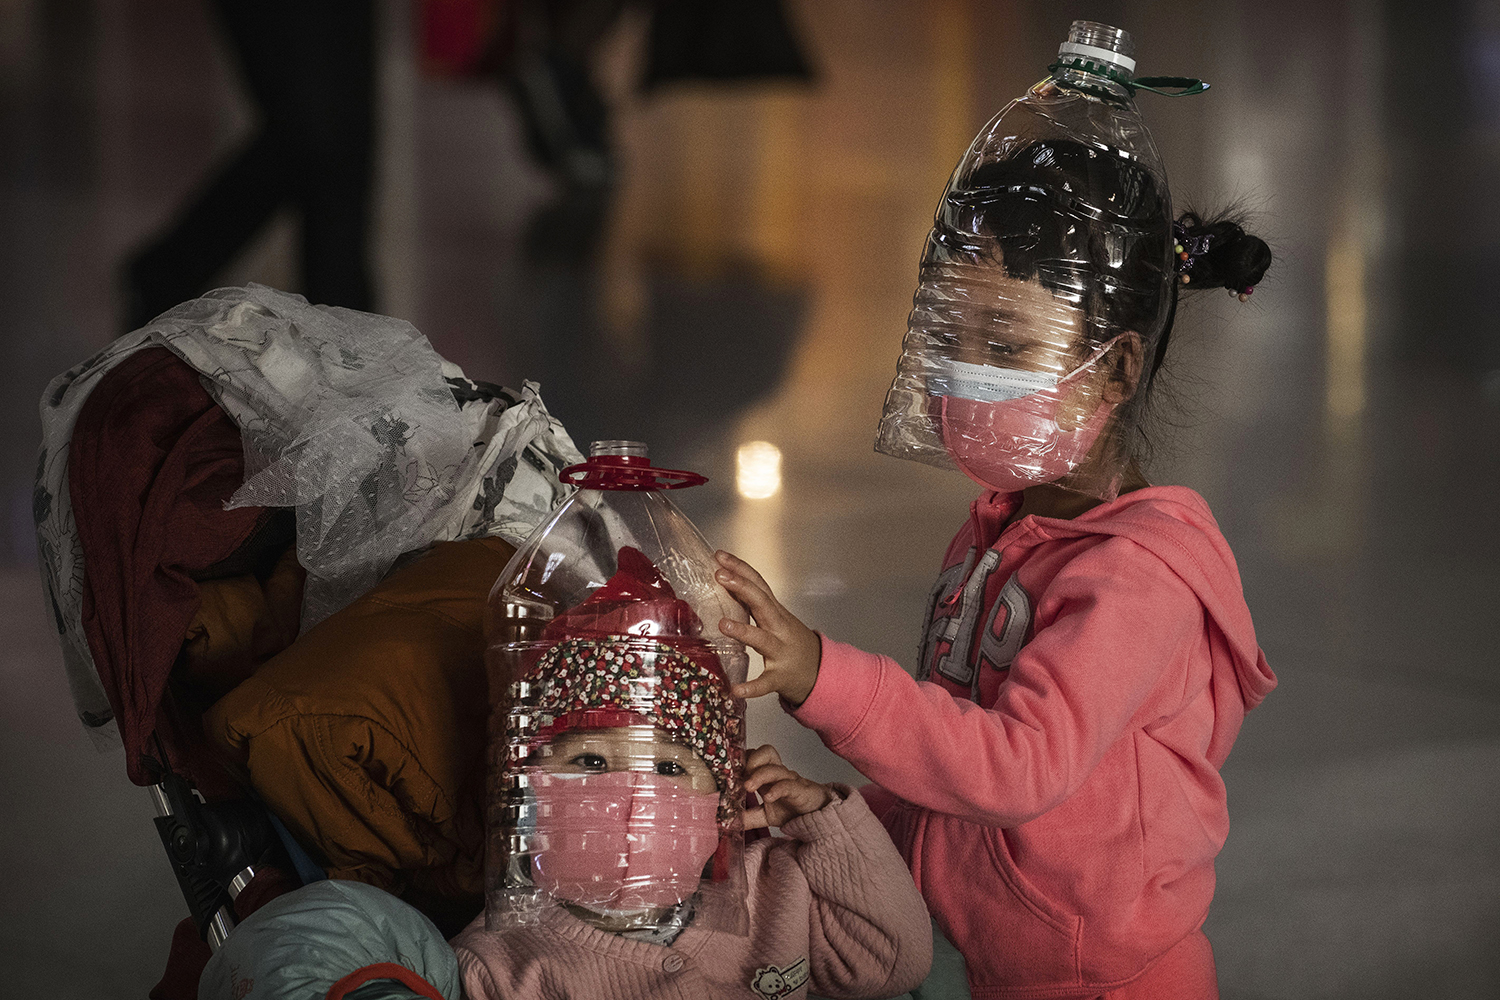 Children wear plastic bottles as makeshift masks while waiting to check in for a flight at Beijing Capital Airport on Jan. 30. The number of coronavirus cases at this point was more than 7,000 in mainland China. Kevin Frayer/Getty Images